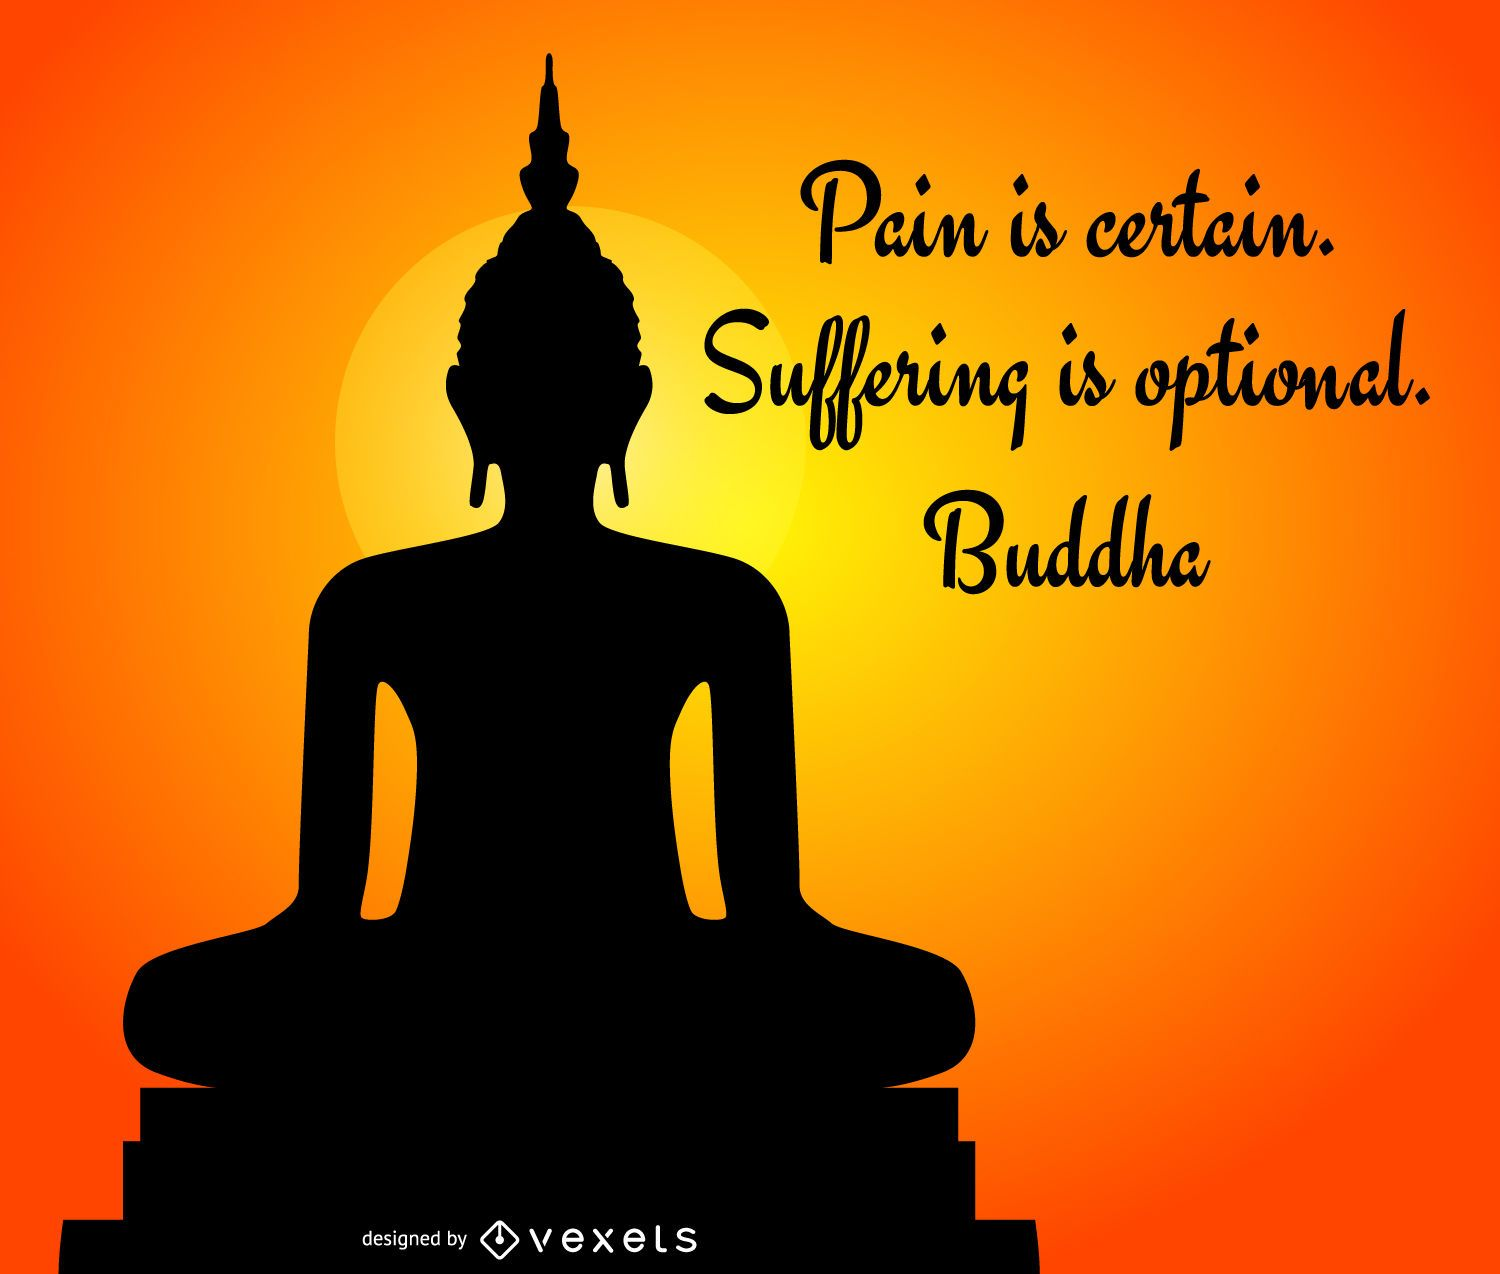 Buddha silhouette with quote